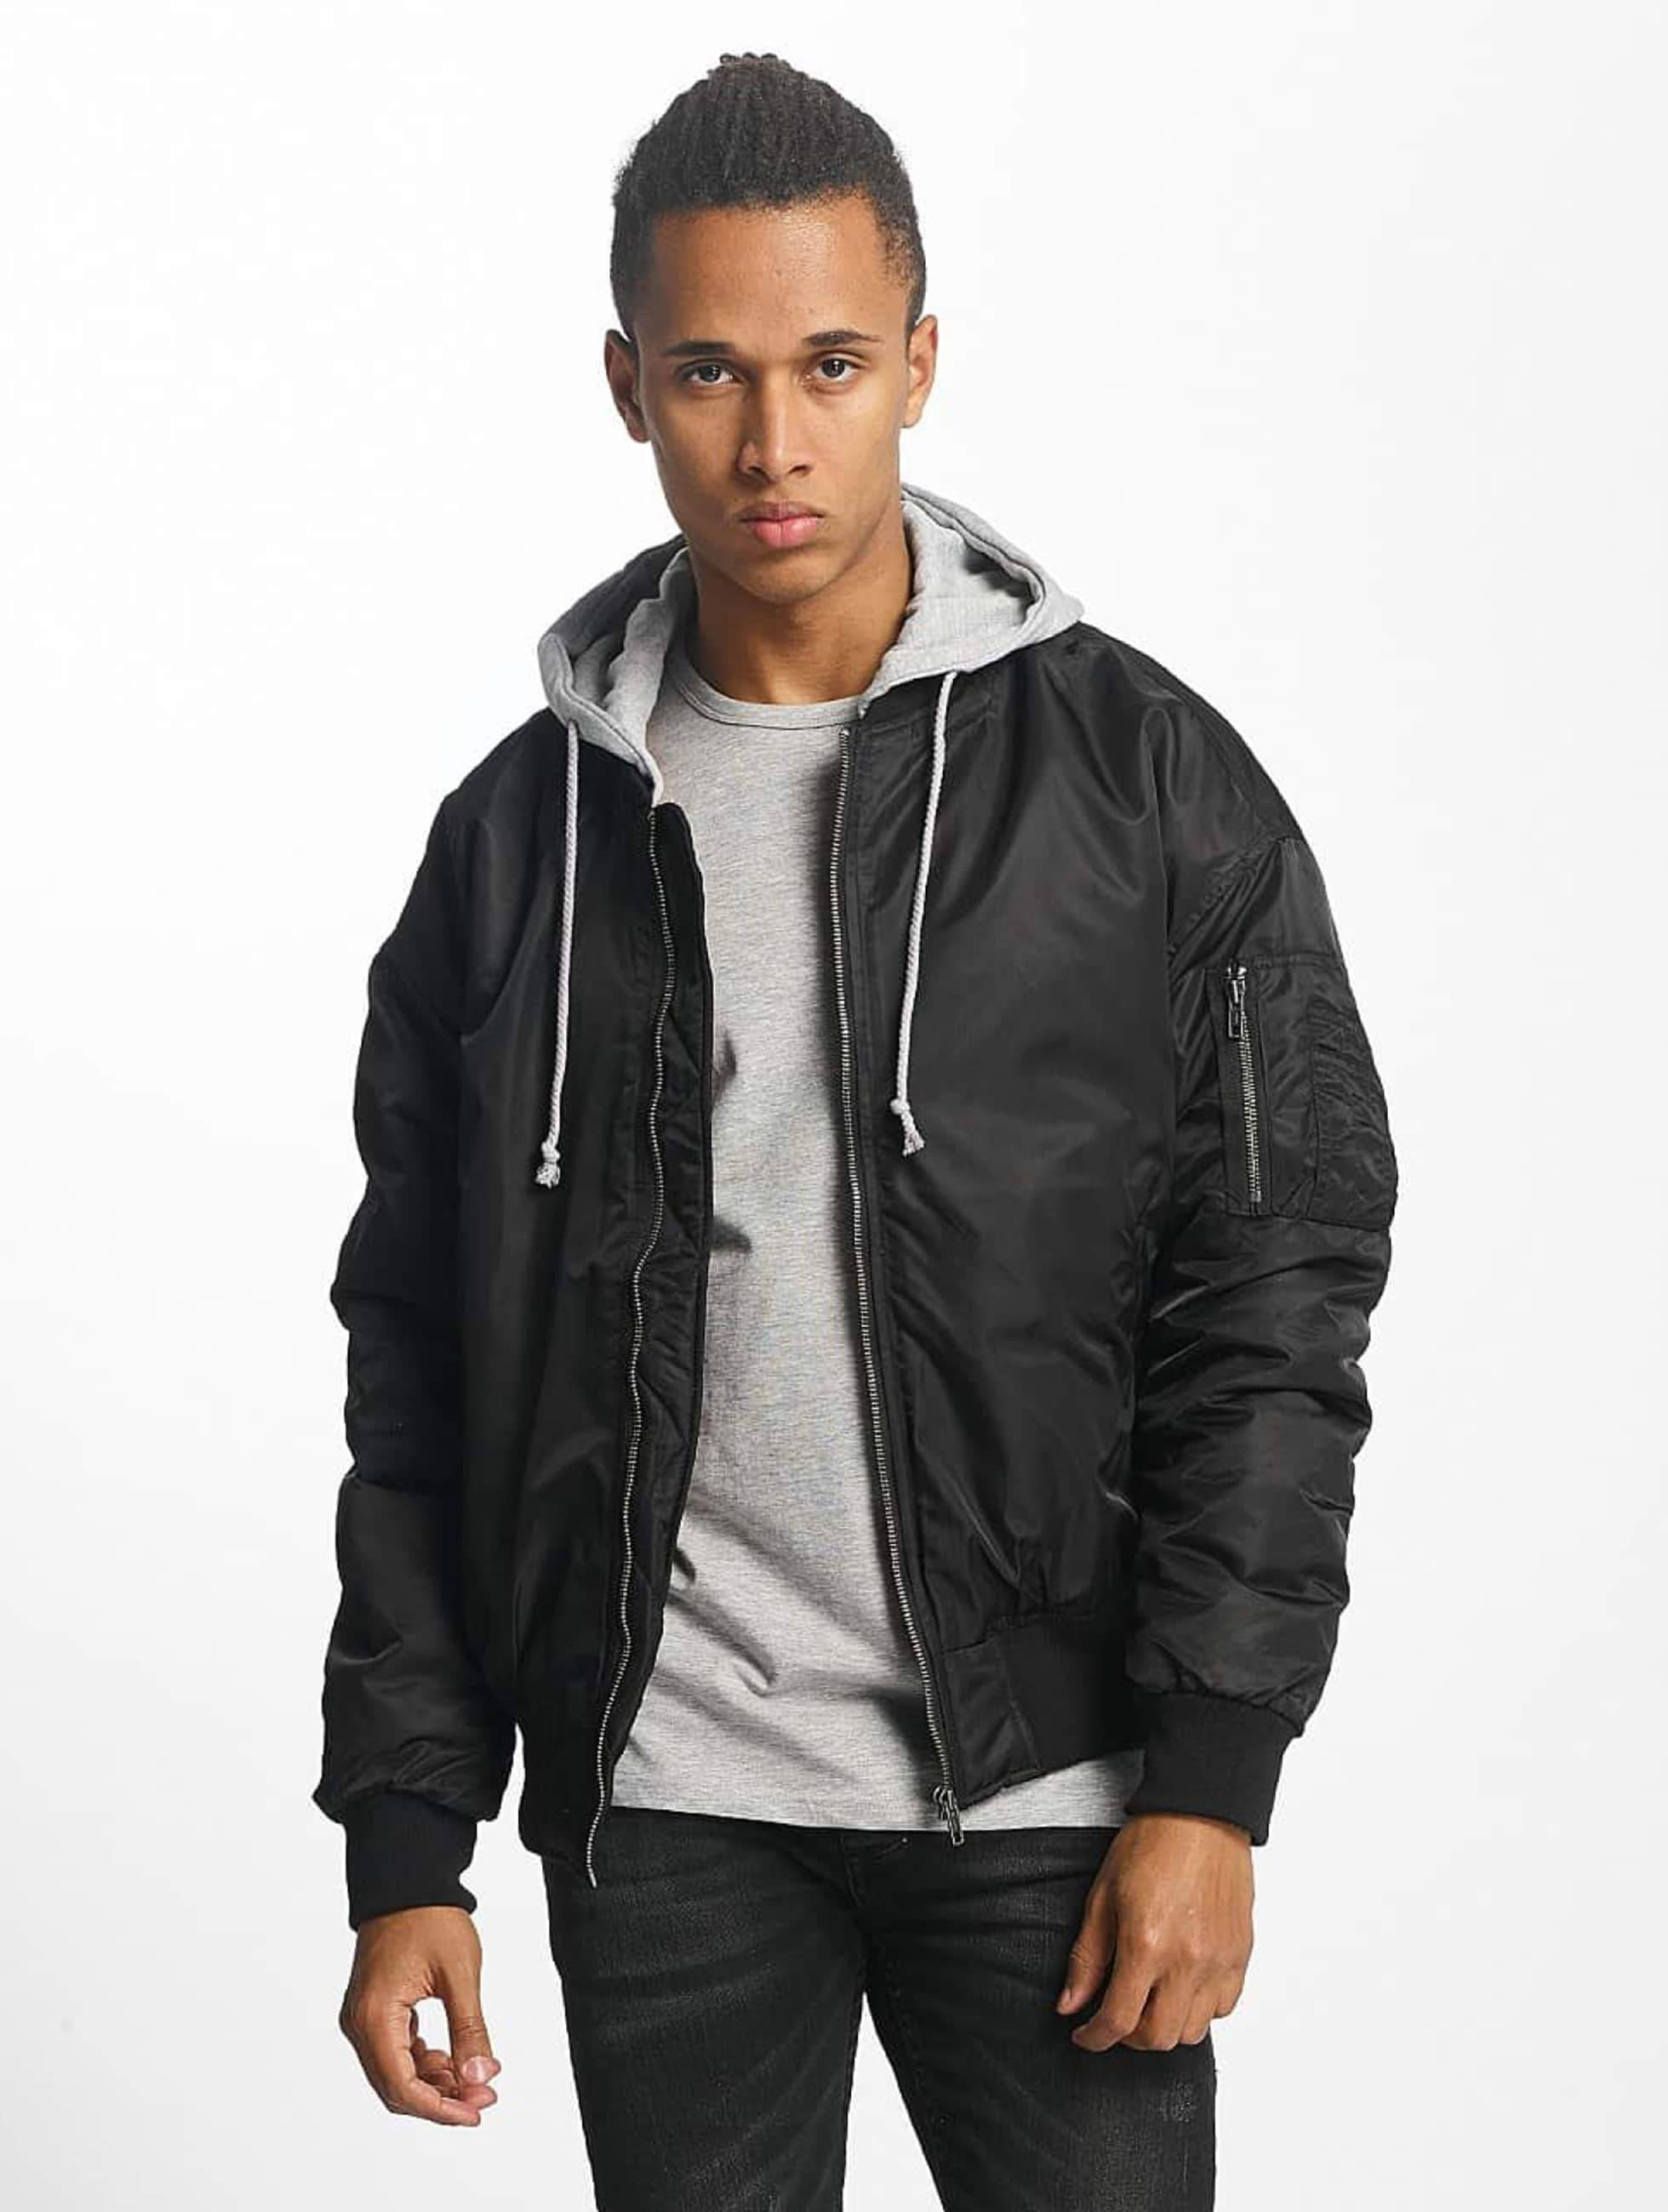 Urban Classics Hooded Oversized Bomber Jacket BlackGrey